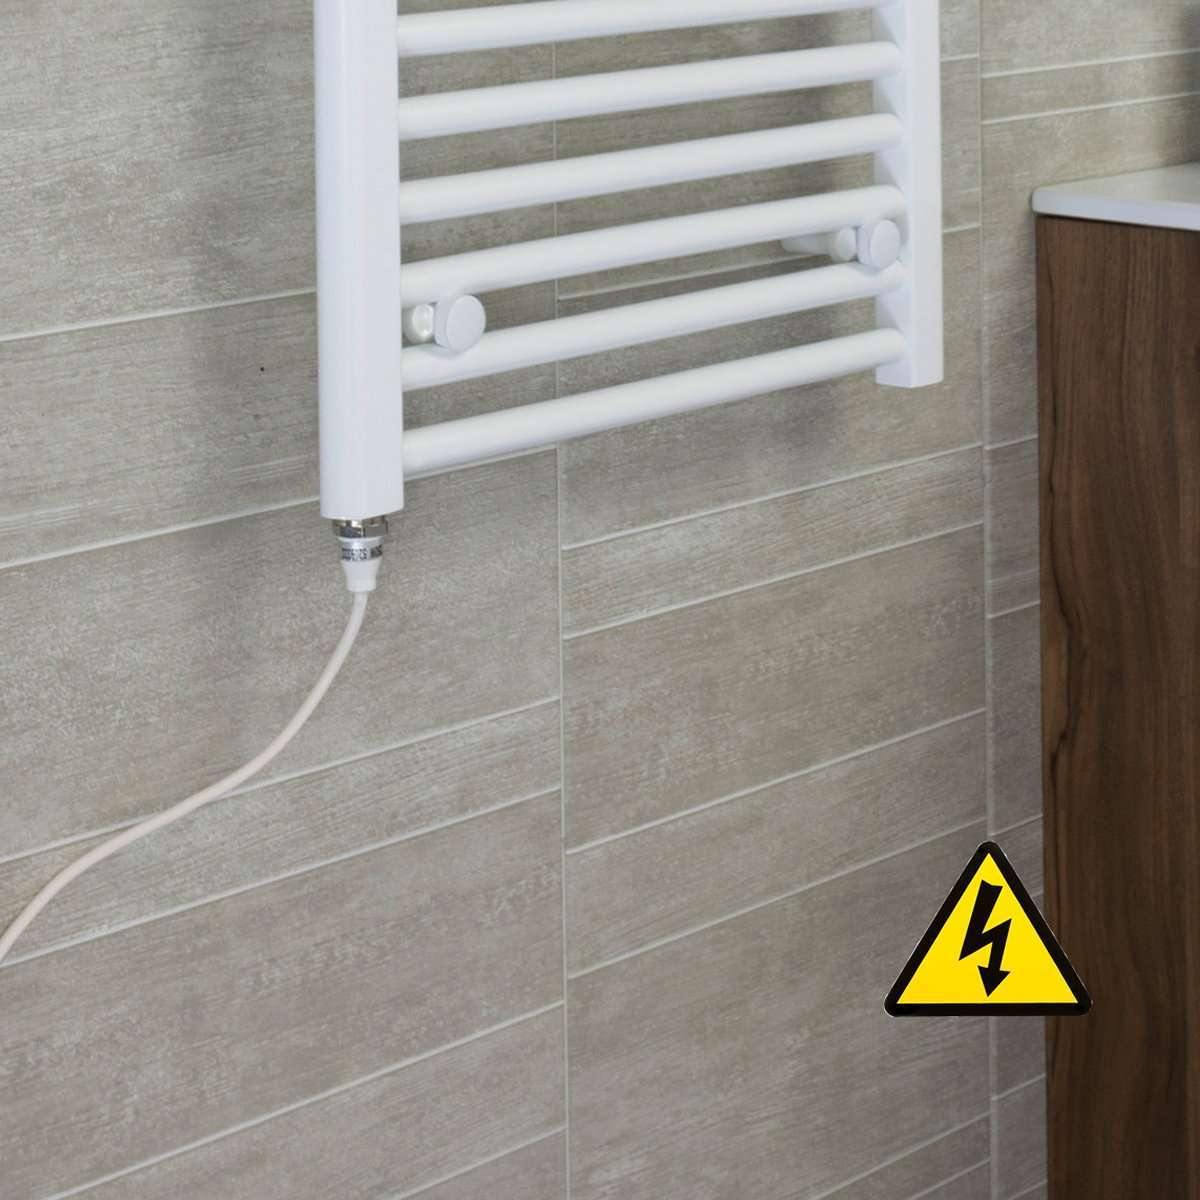 500mm Wide 600mm High Curved White Heated Towel Rail Radiator Gas or Electric,Pre-Filled Single Heat Element